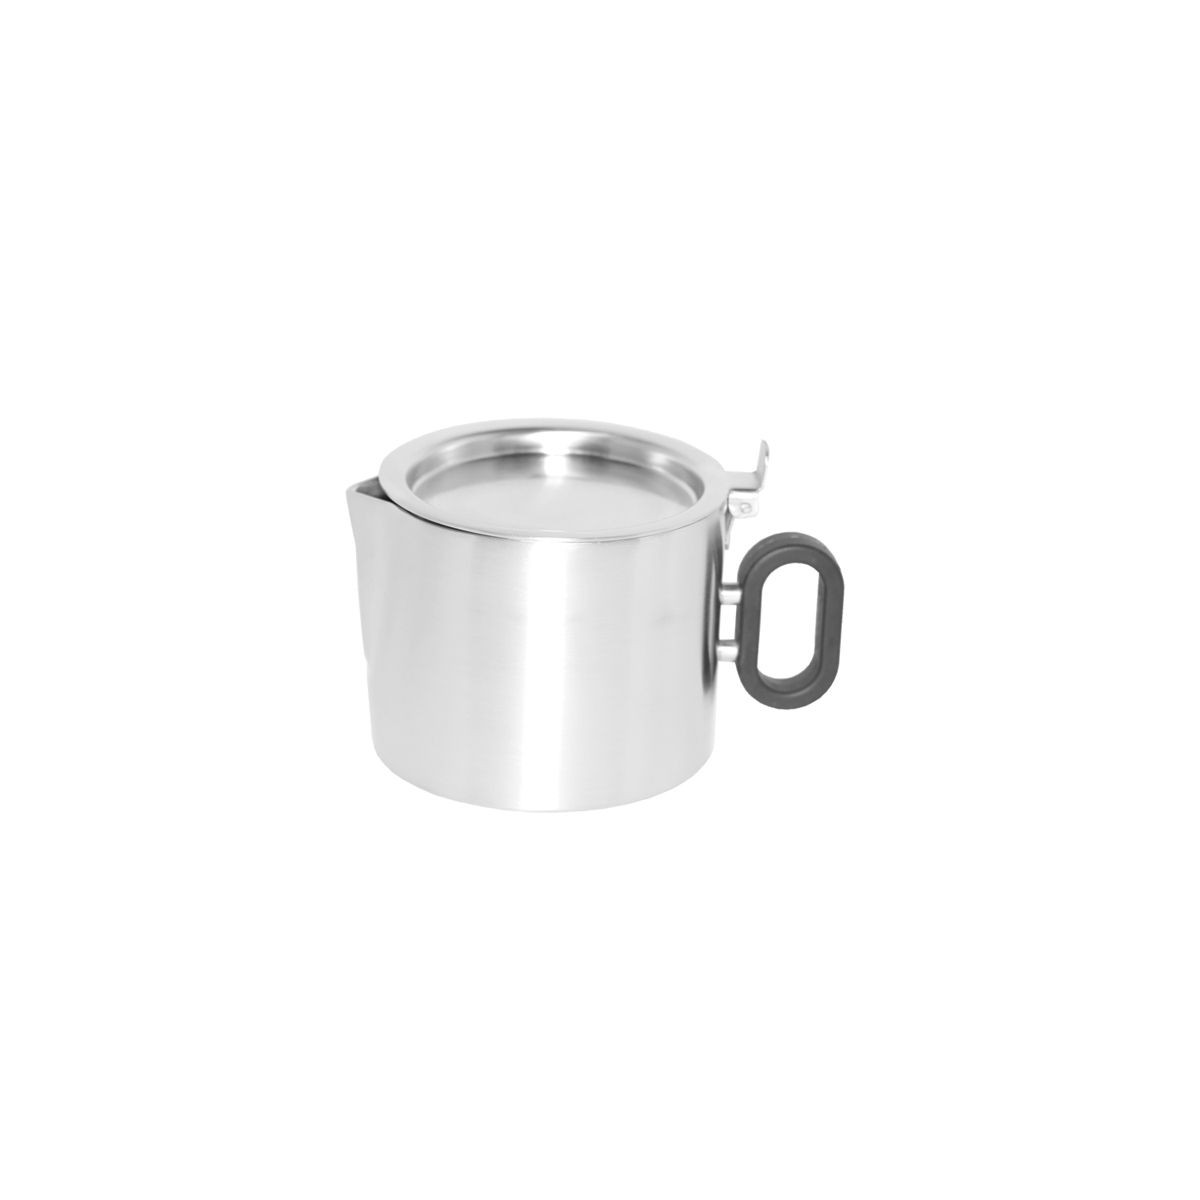 Service Ideas SB-20 SteelForme Double Wall Brushed Stainless Steel Tea Pot, 0.4 Liter